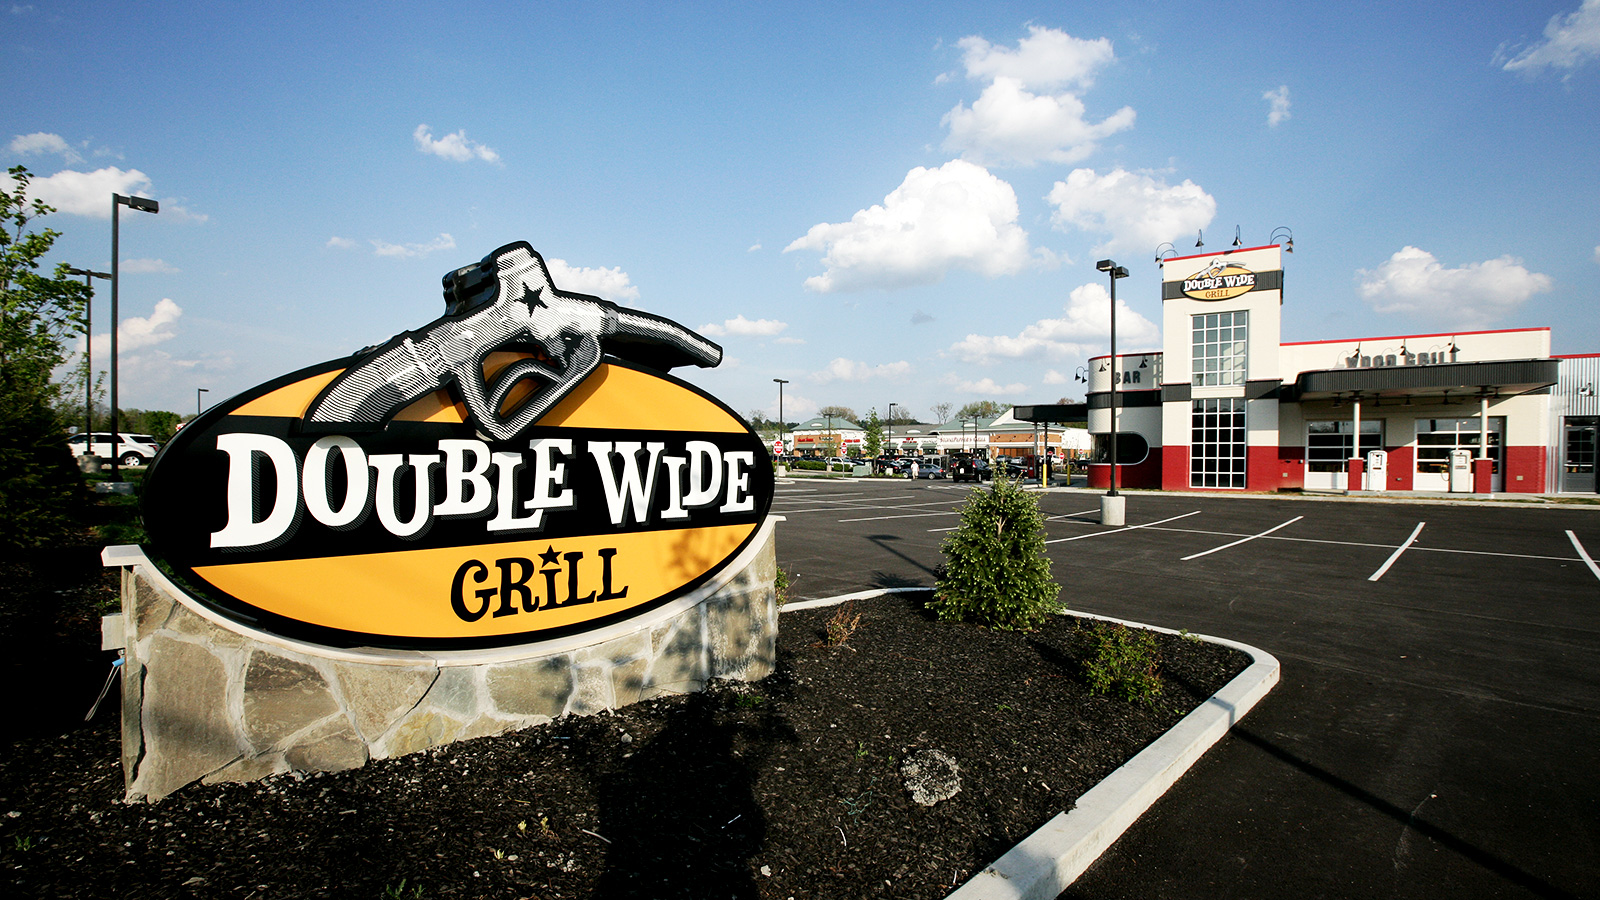 Doublewide Bar & Grill